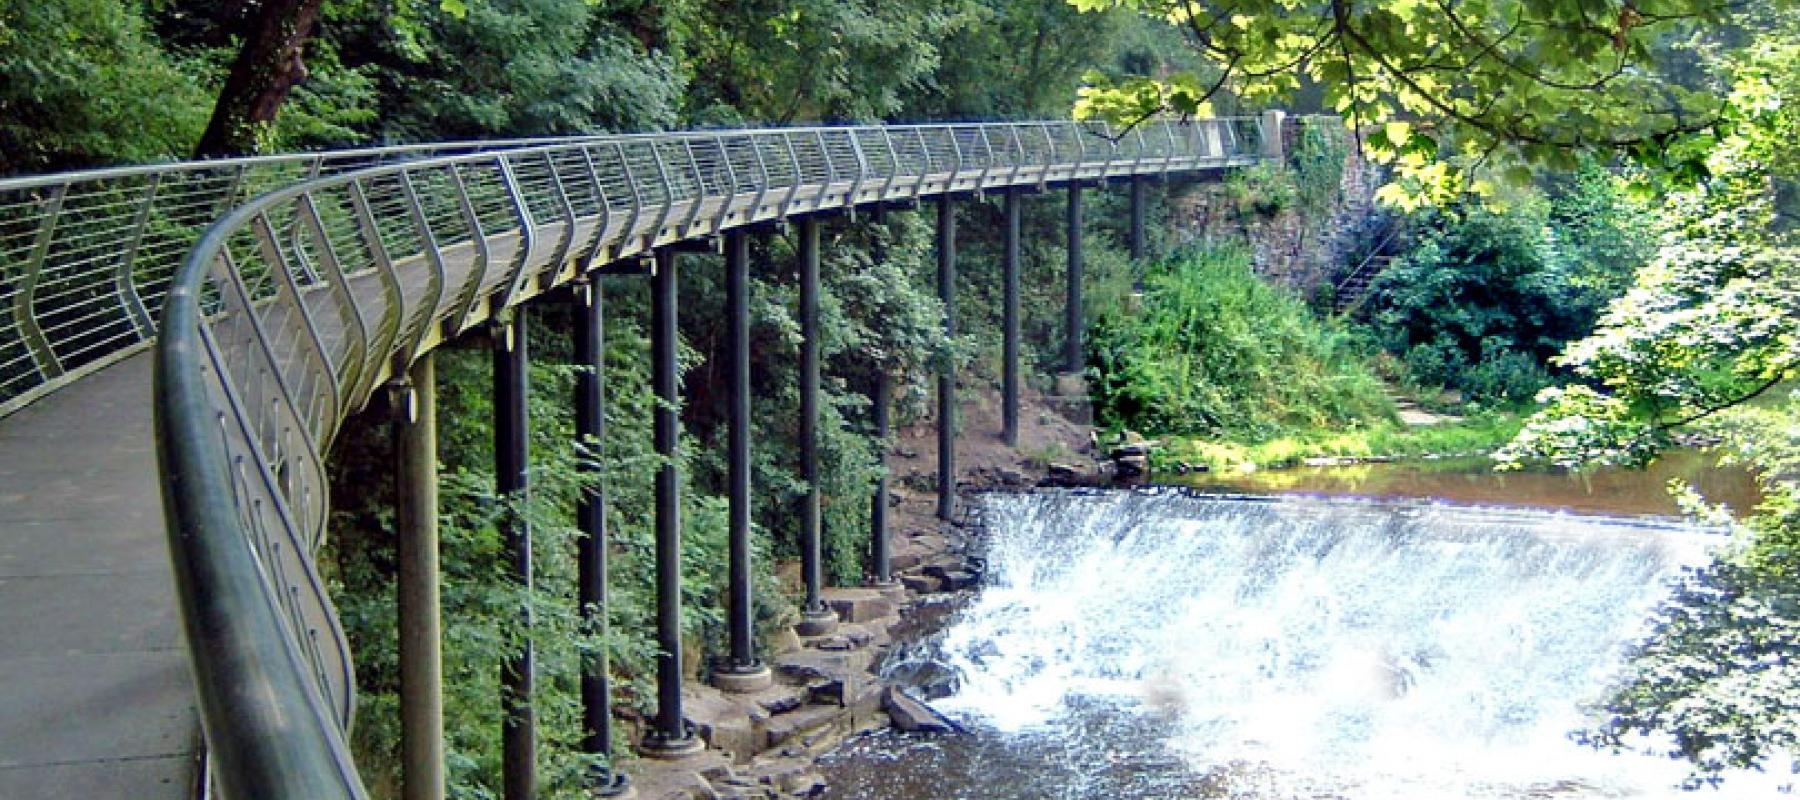 Millenium Walkway at New Mills along the Buxton Line